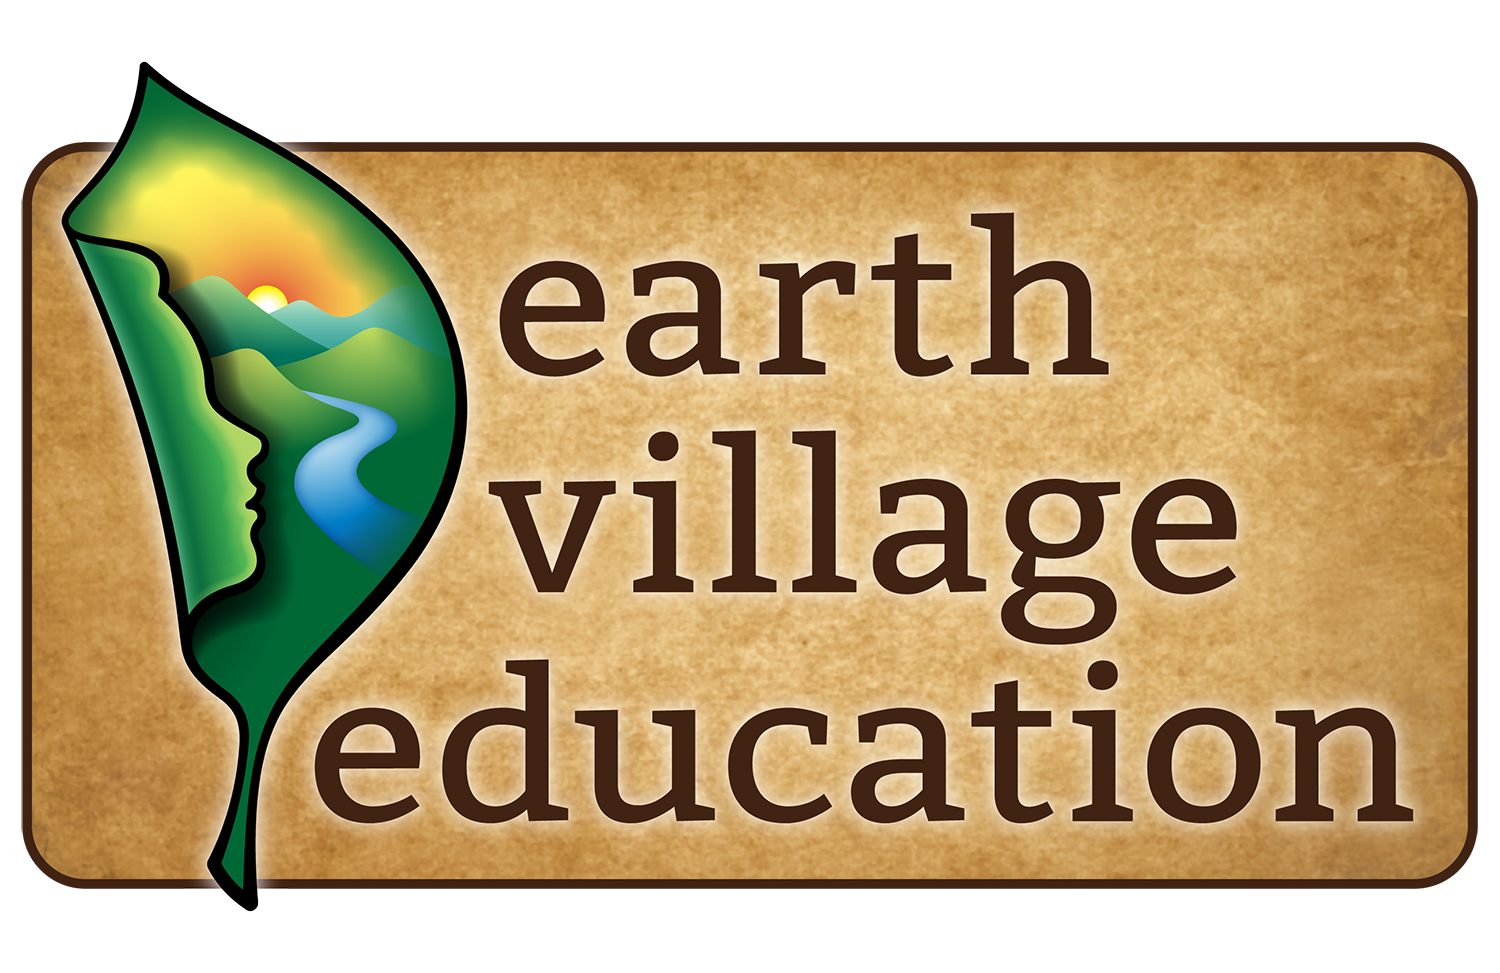 Earth Village Education logo